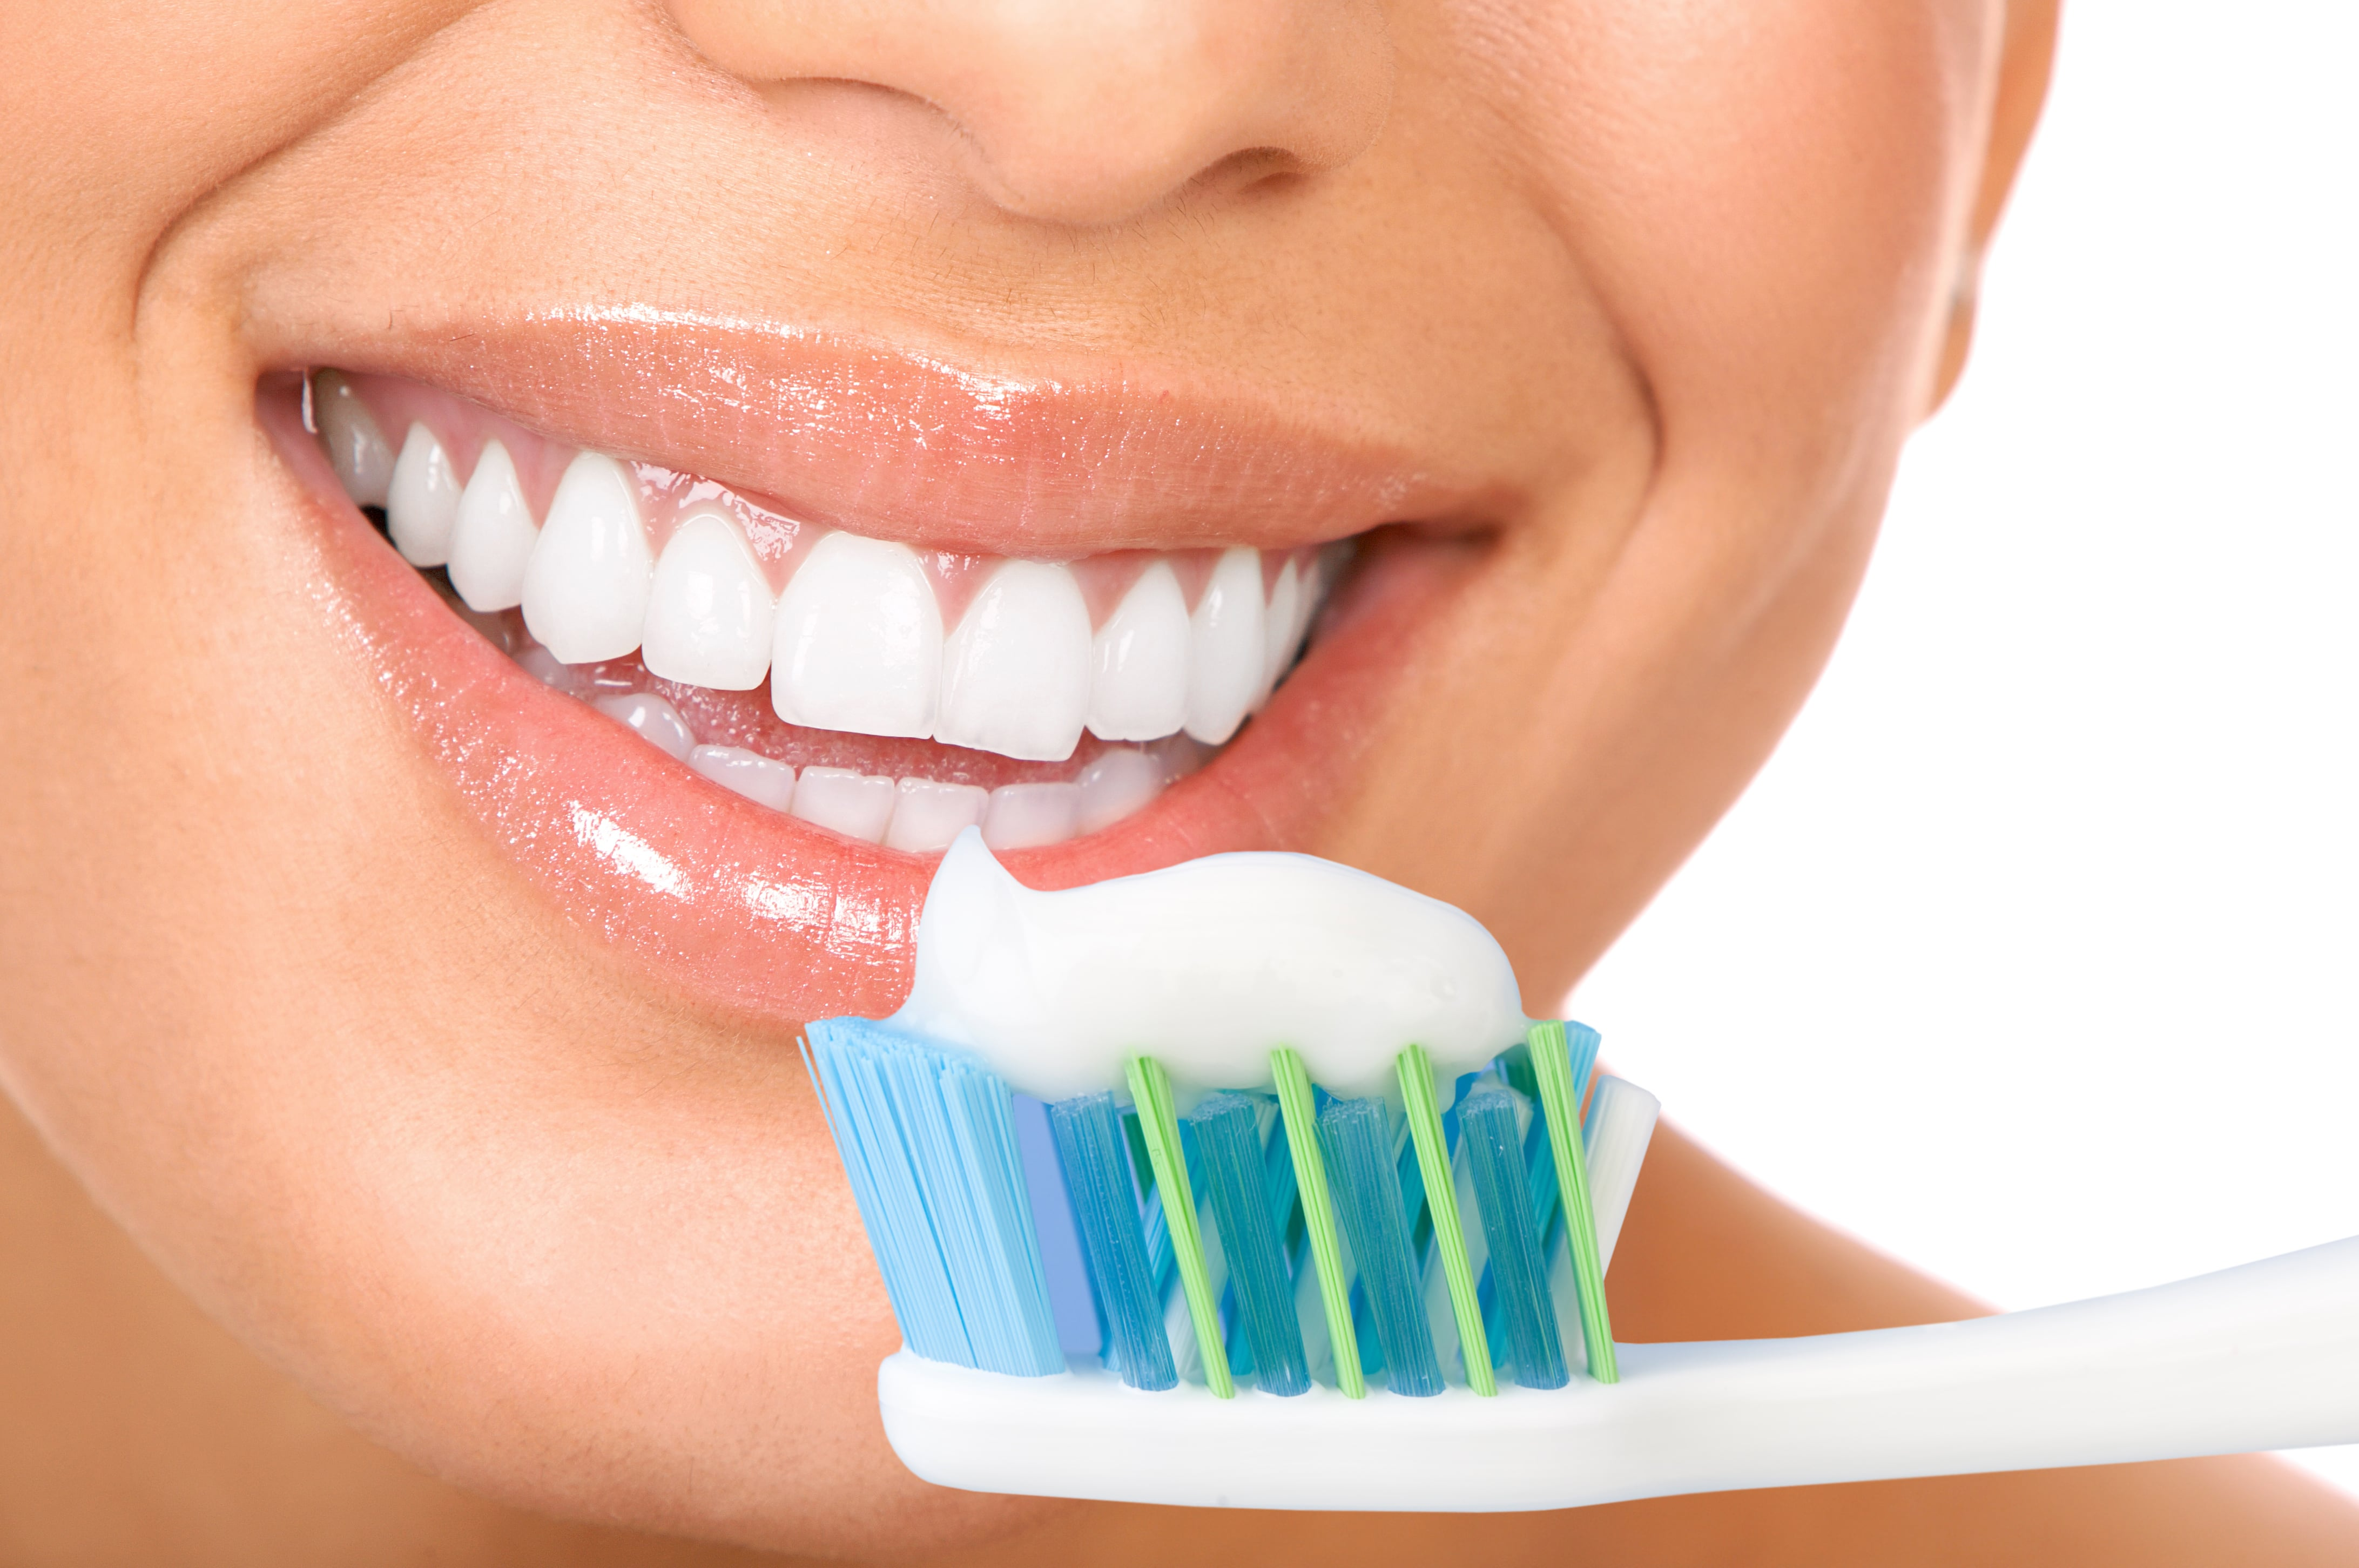 woman holding a toothbrush with toothpaste in front of her white smile